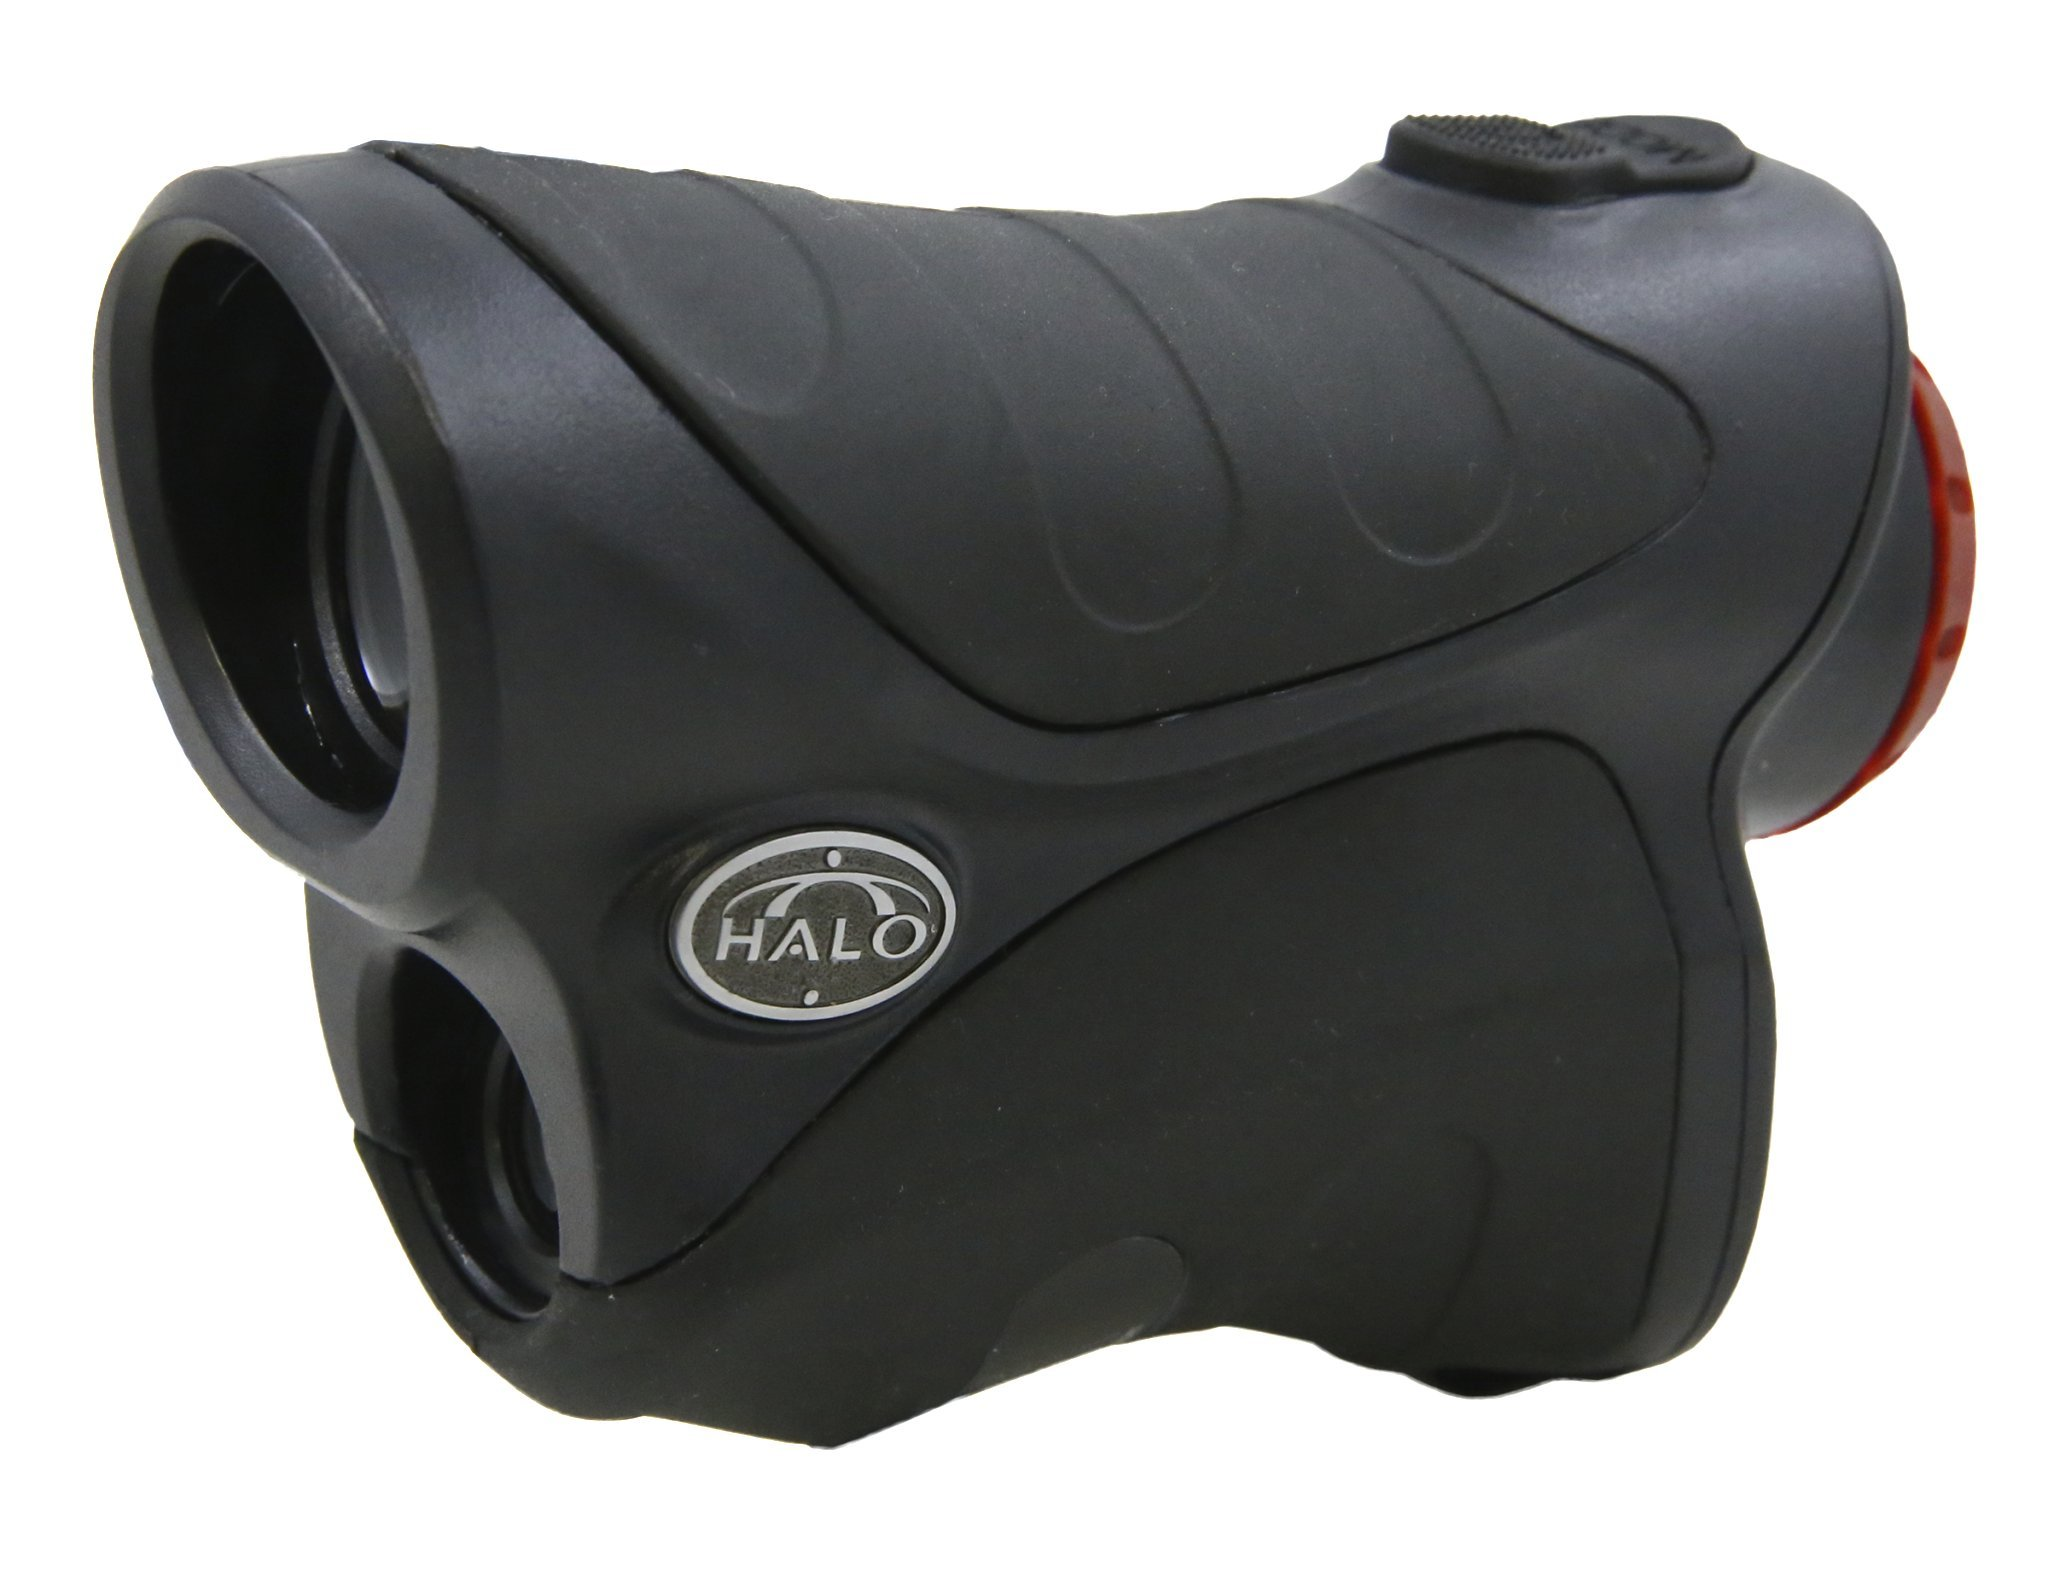 Halo Z6X2-7 Rangefinder by HALO